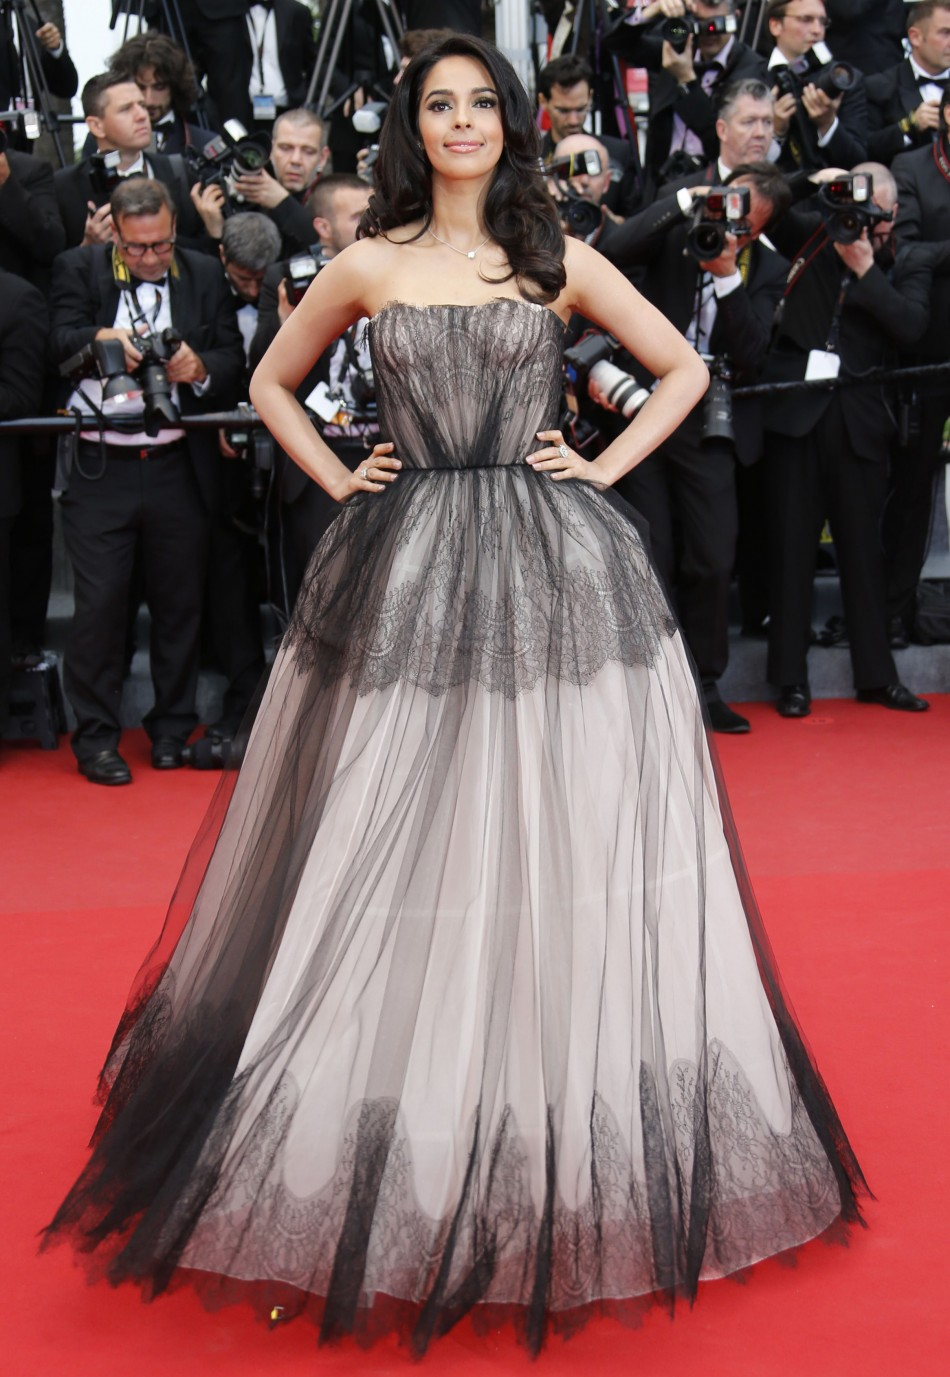 Bollywood actress Mallika Sherawat poses on the red carpet as she arrives for the screening of the film Inside Llewyn Davis in competition during the 66th Cannes Film Festival in Cannes May 19, 2013.